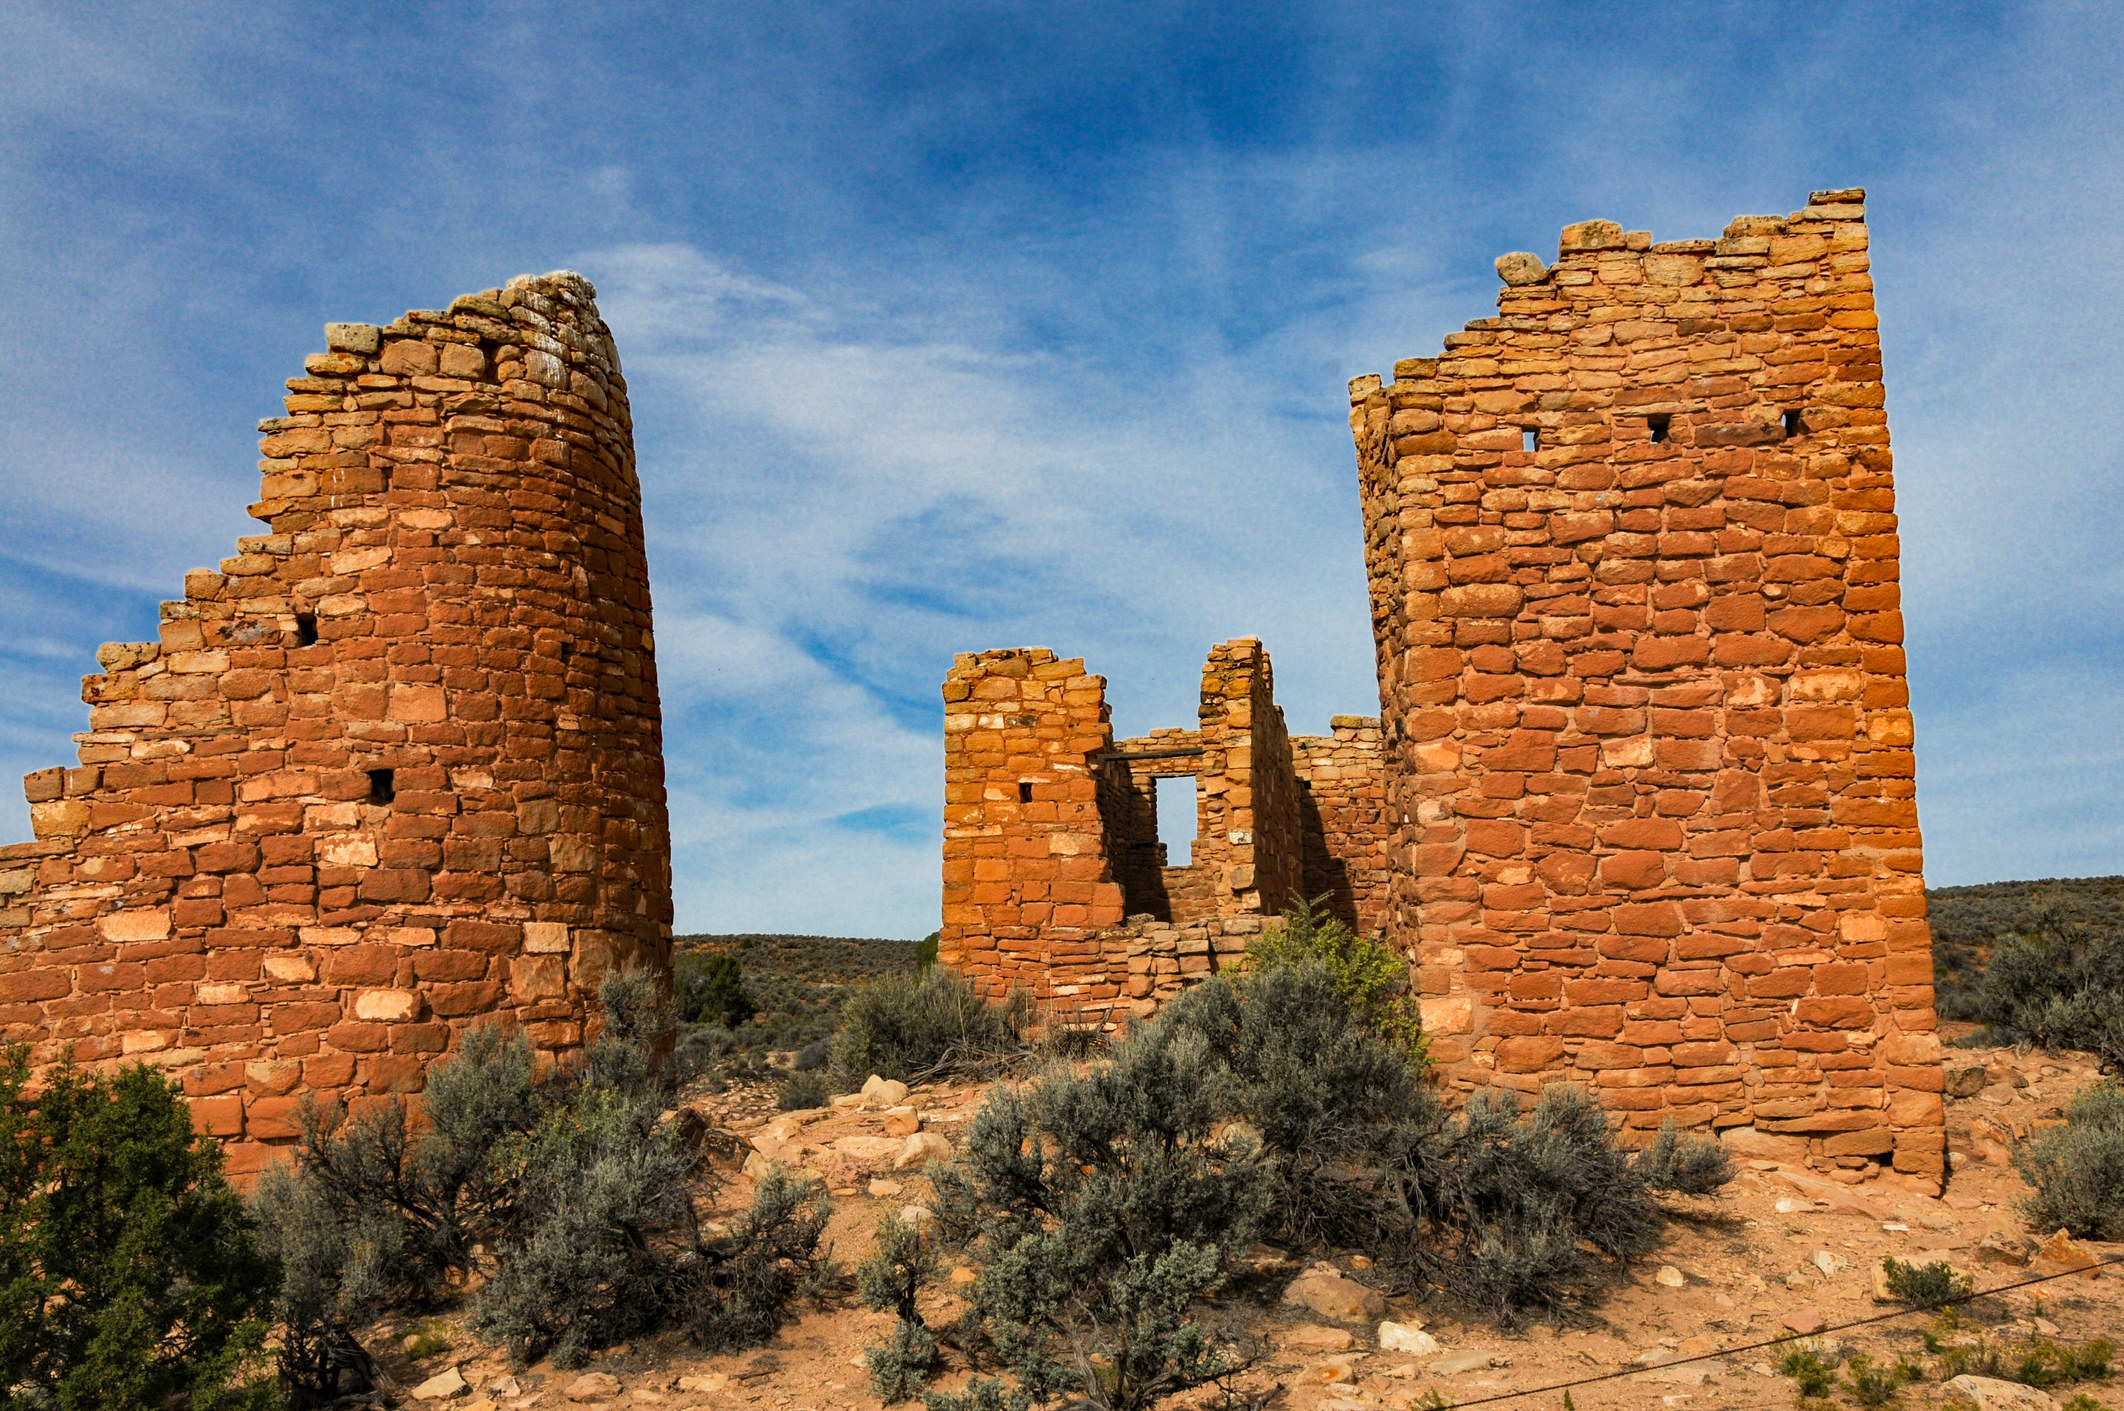 remains of ancient red brick buildings surrounded by shrub and desert landscapes